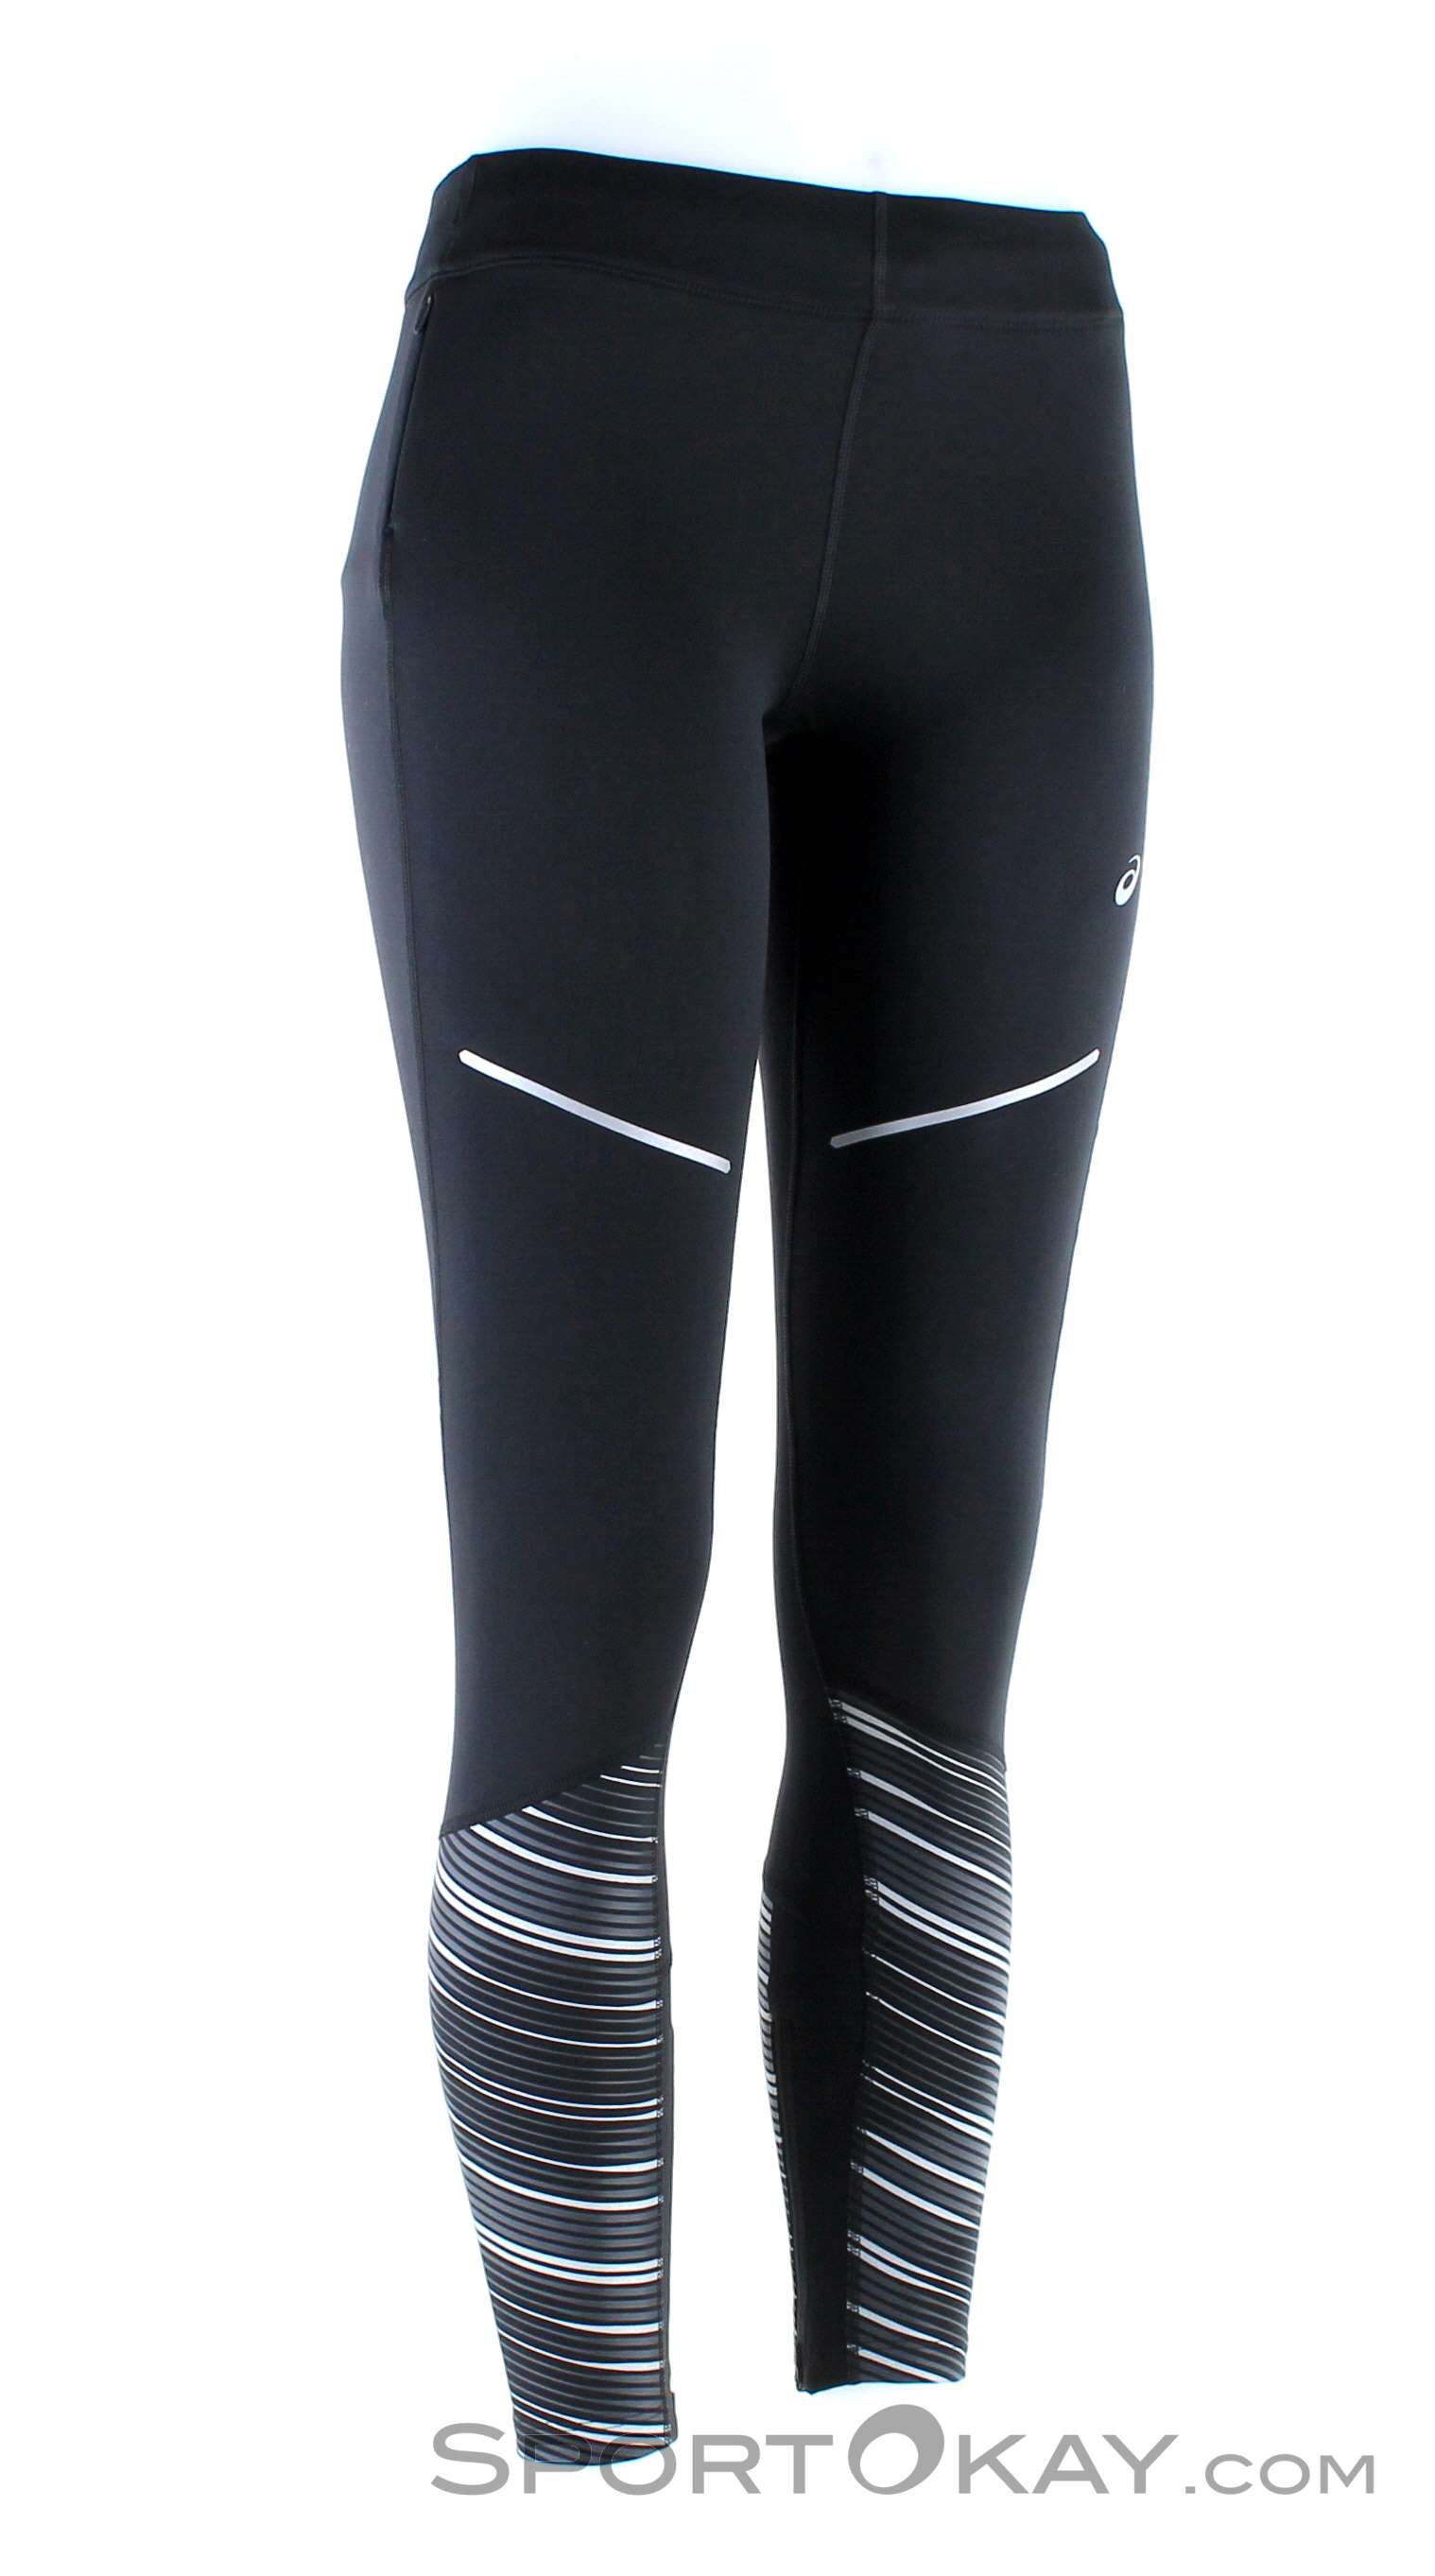 Asics 78 Tight Womens Leggings Pants Fitness Clothing